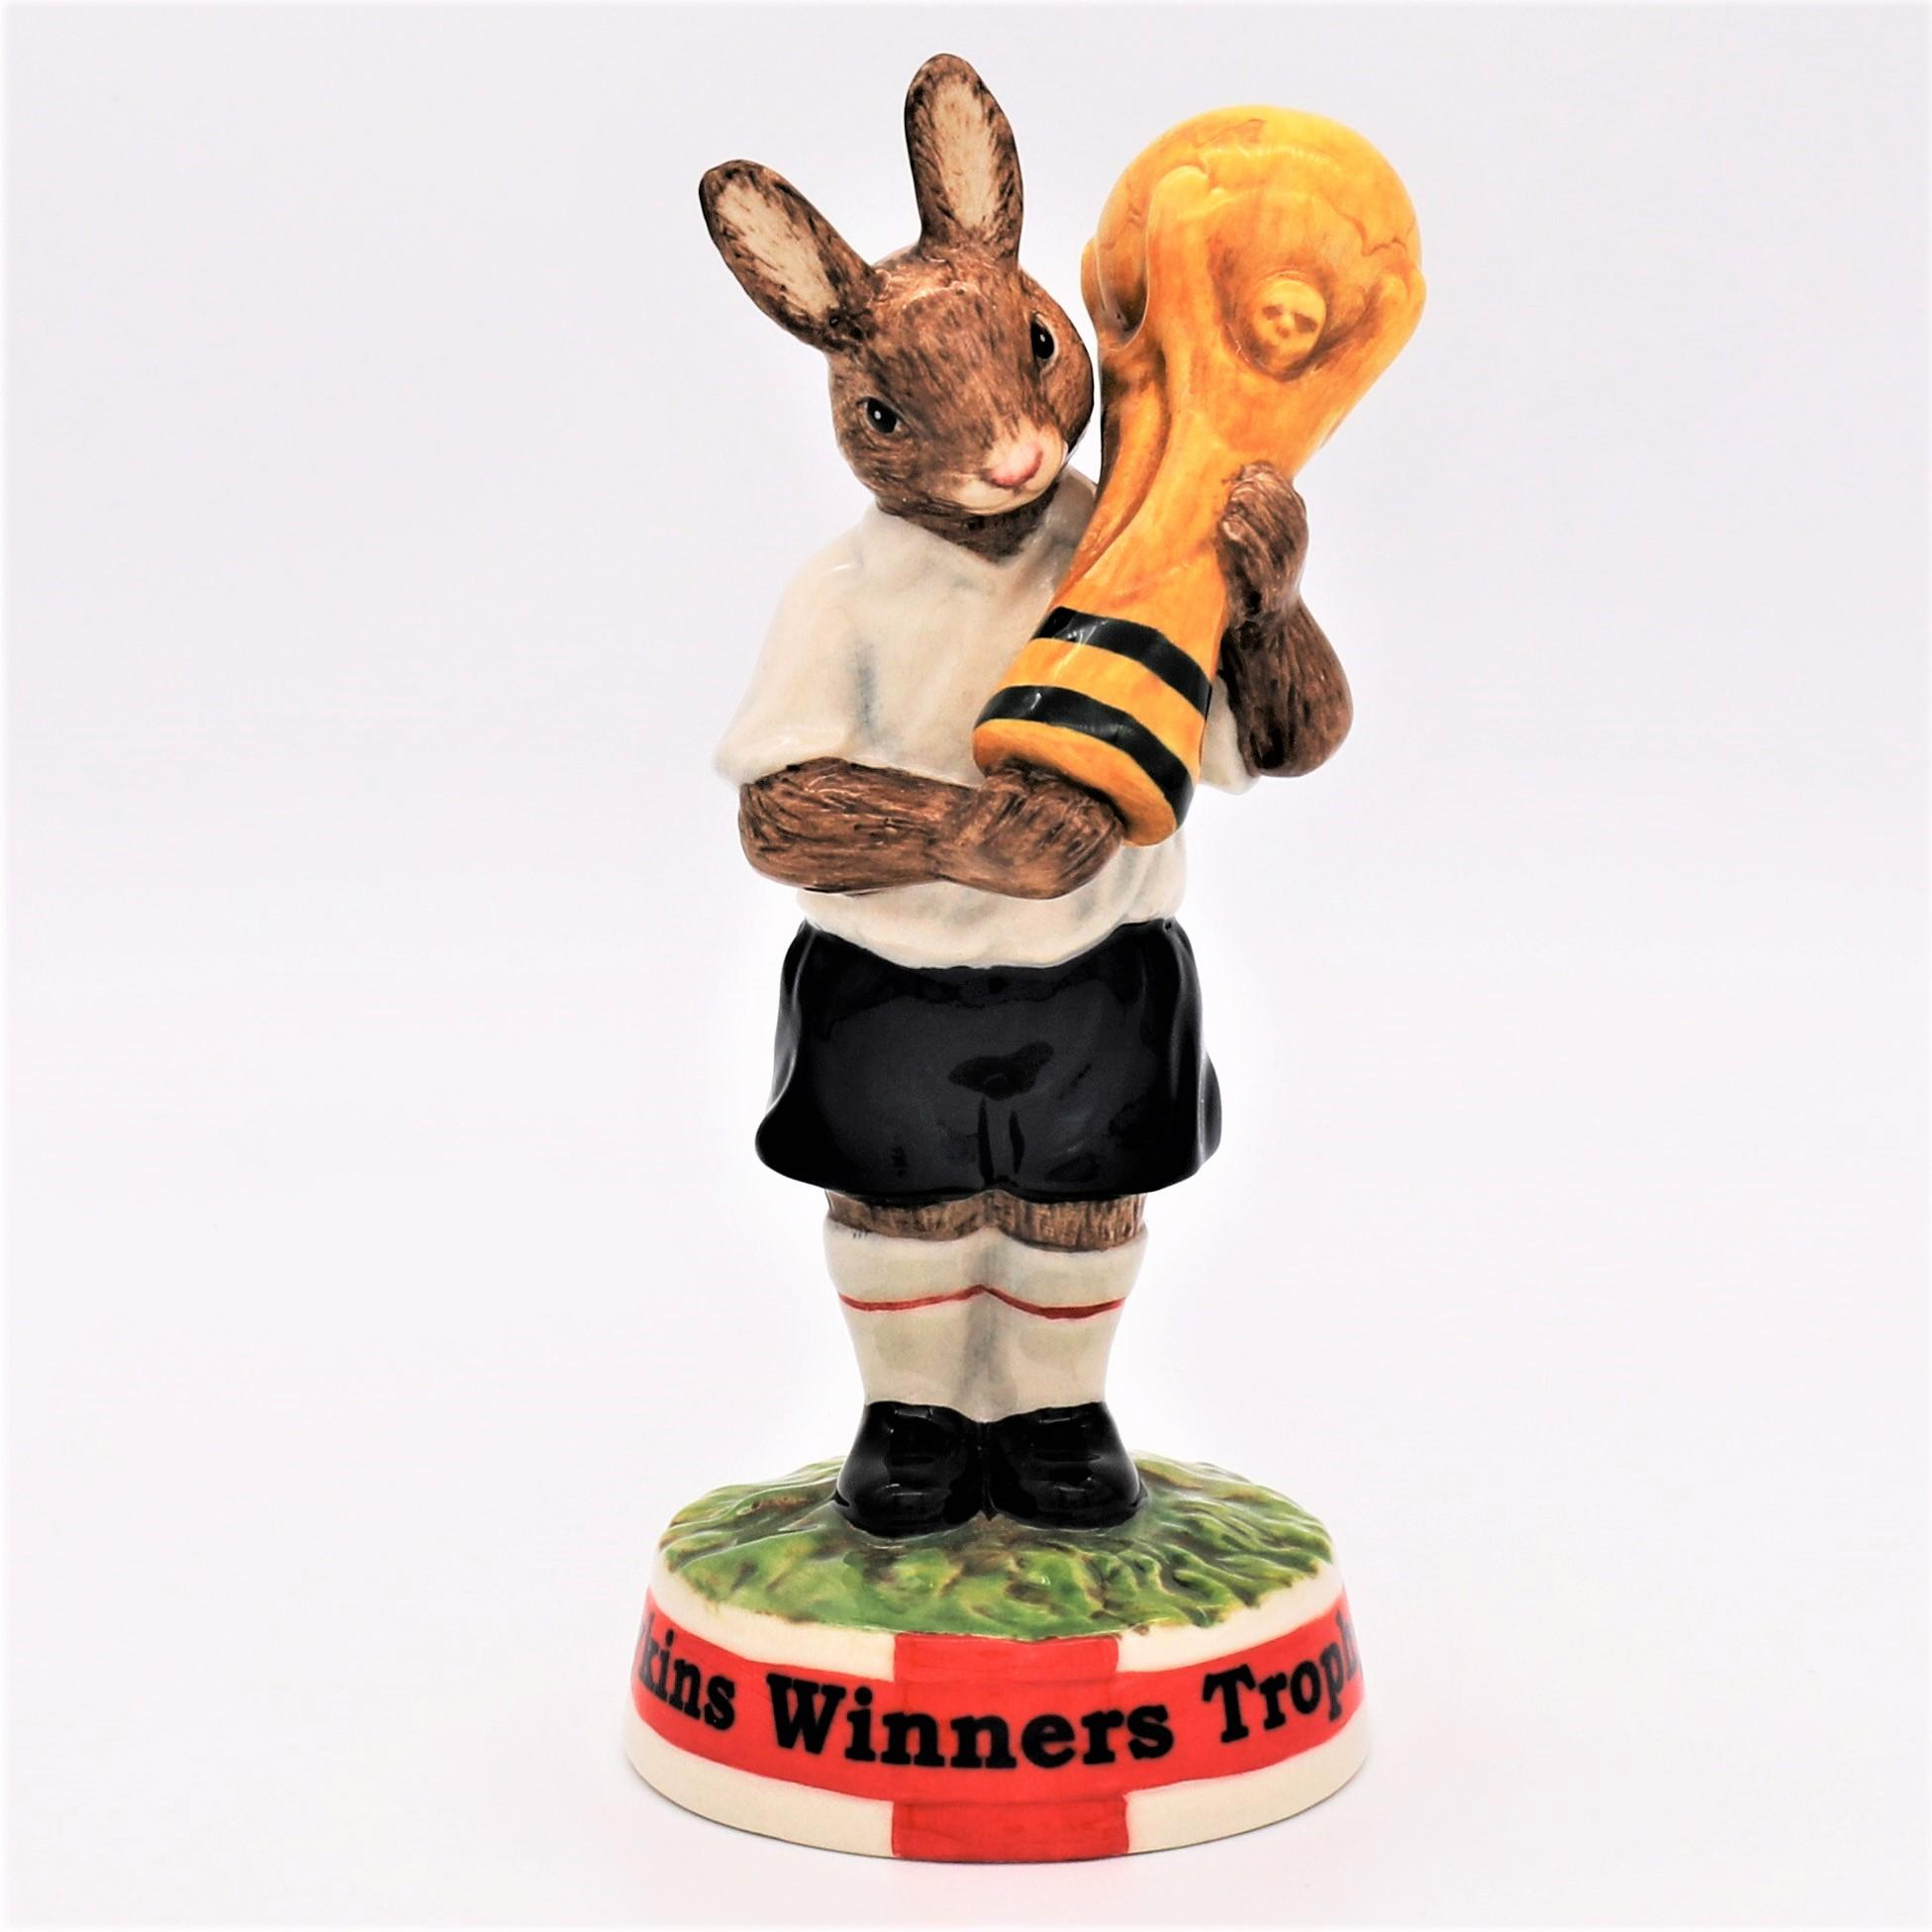 Royal Doulton Bunnykins figure - DB409 Winners Trophy 2006 front